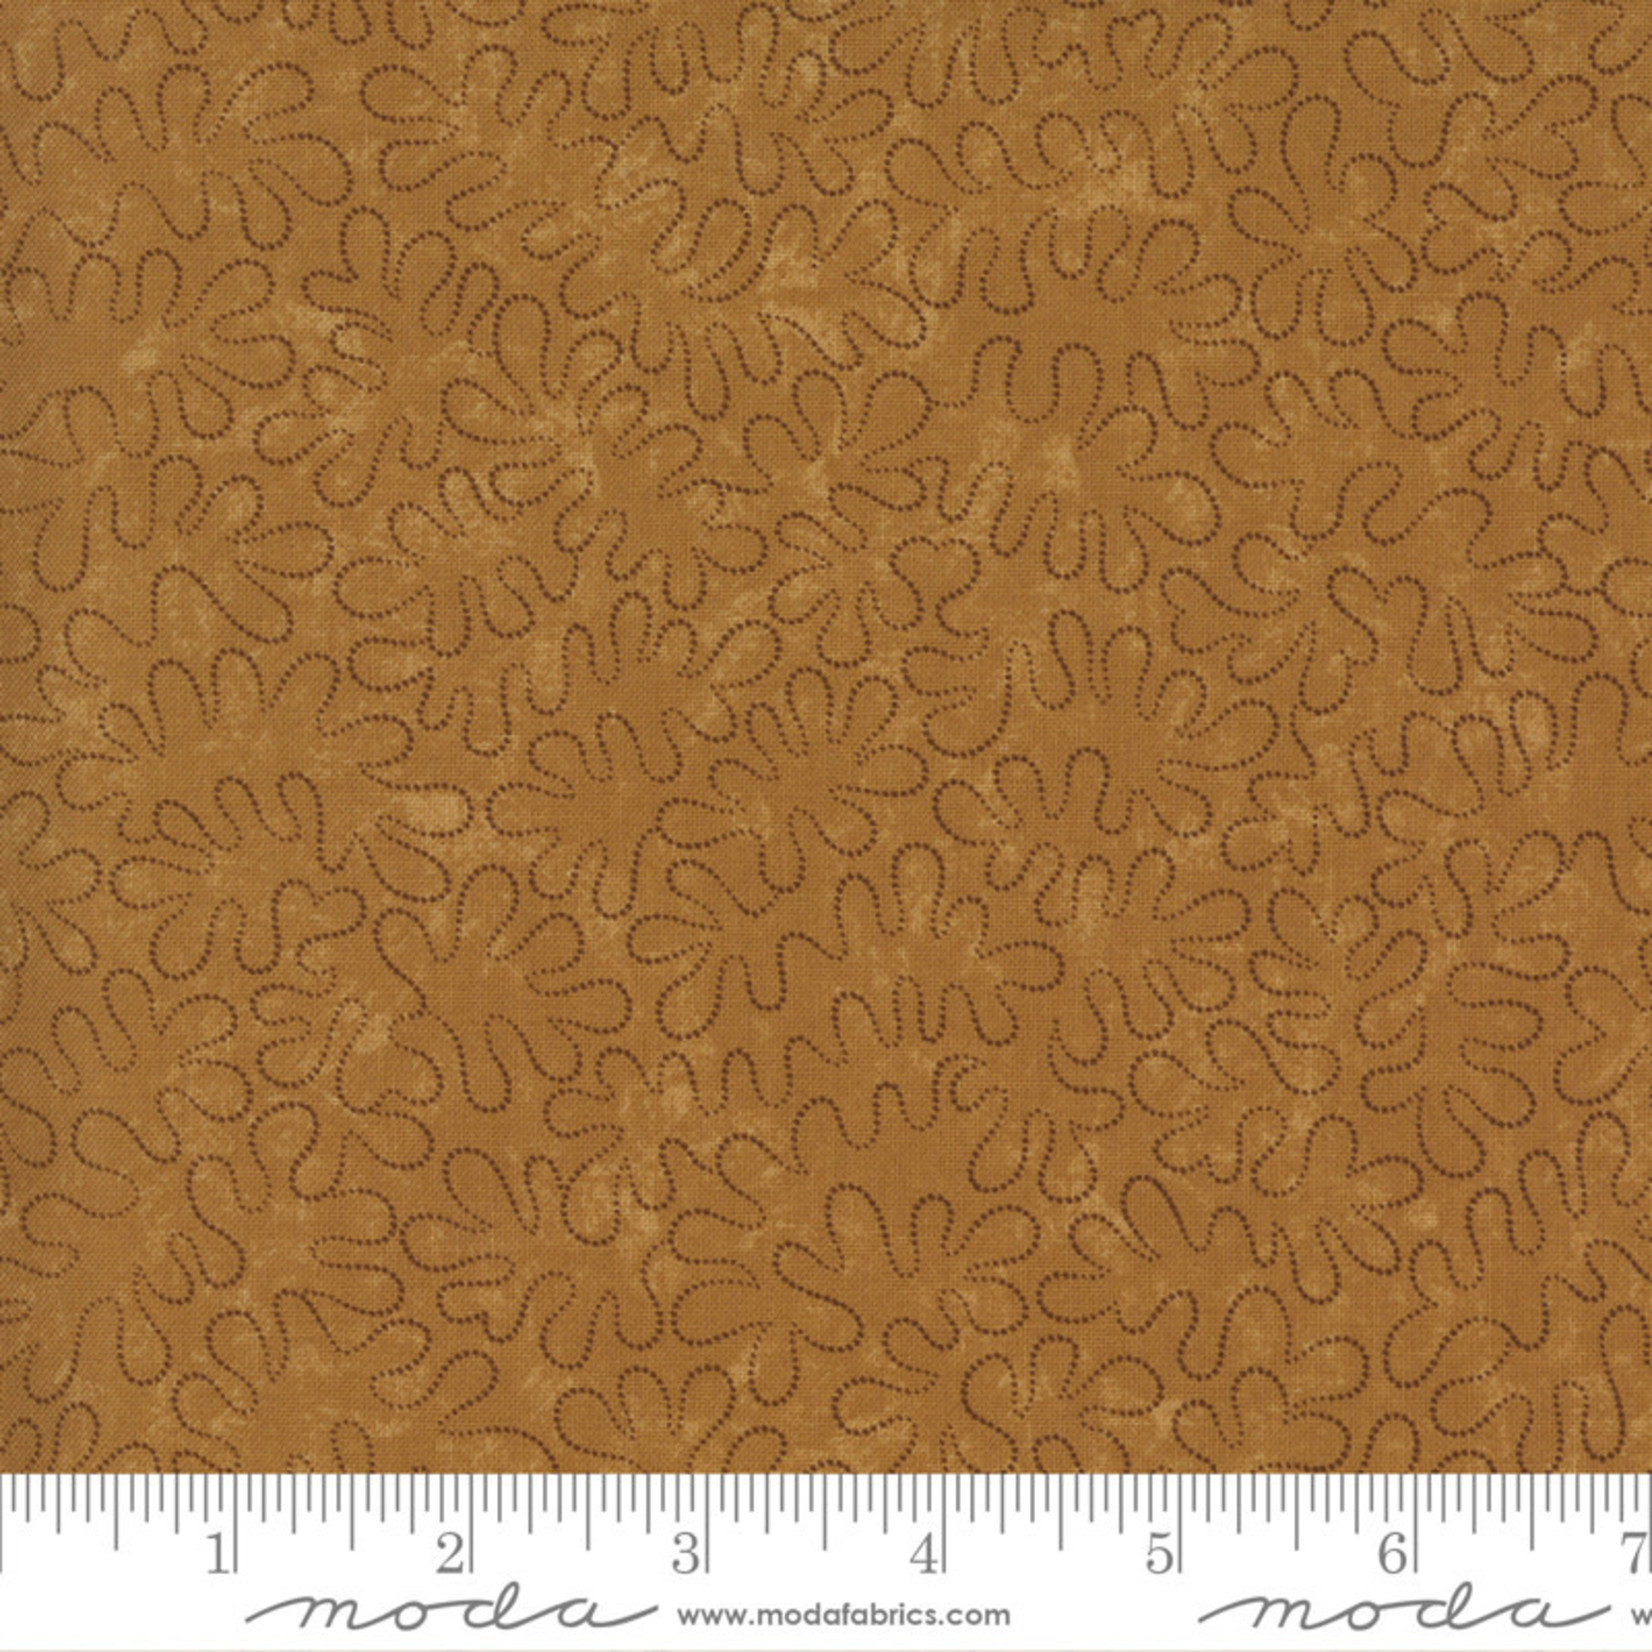 Kansas Troubles Quilters Prairie Dreams, Stone Pathway, Gold 9658 12 $0.20 per cm or $20/m